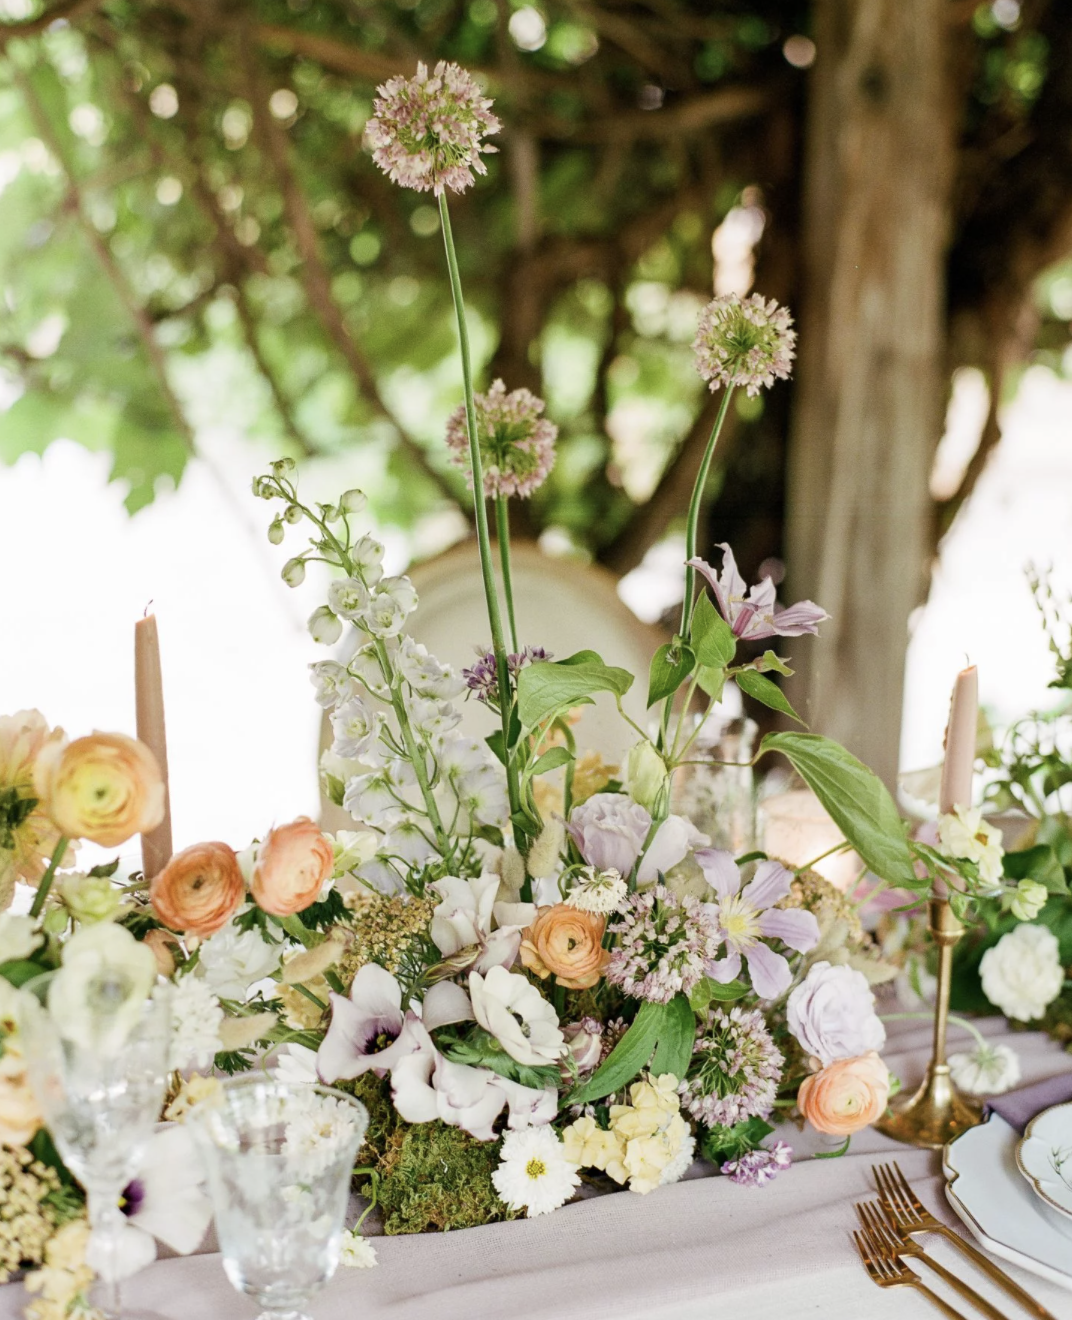 A Dreamy Sherbet Color Palette Drove the Design of This Garden Micro-Wedding in Colorado